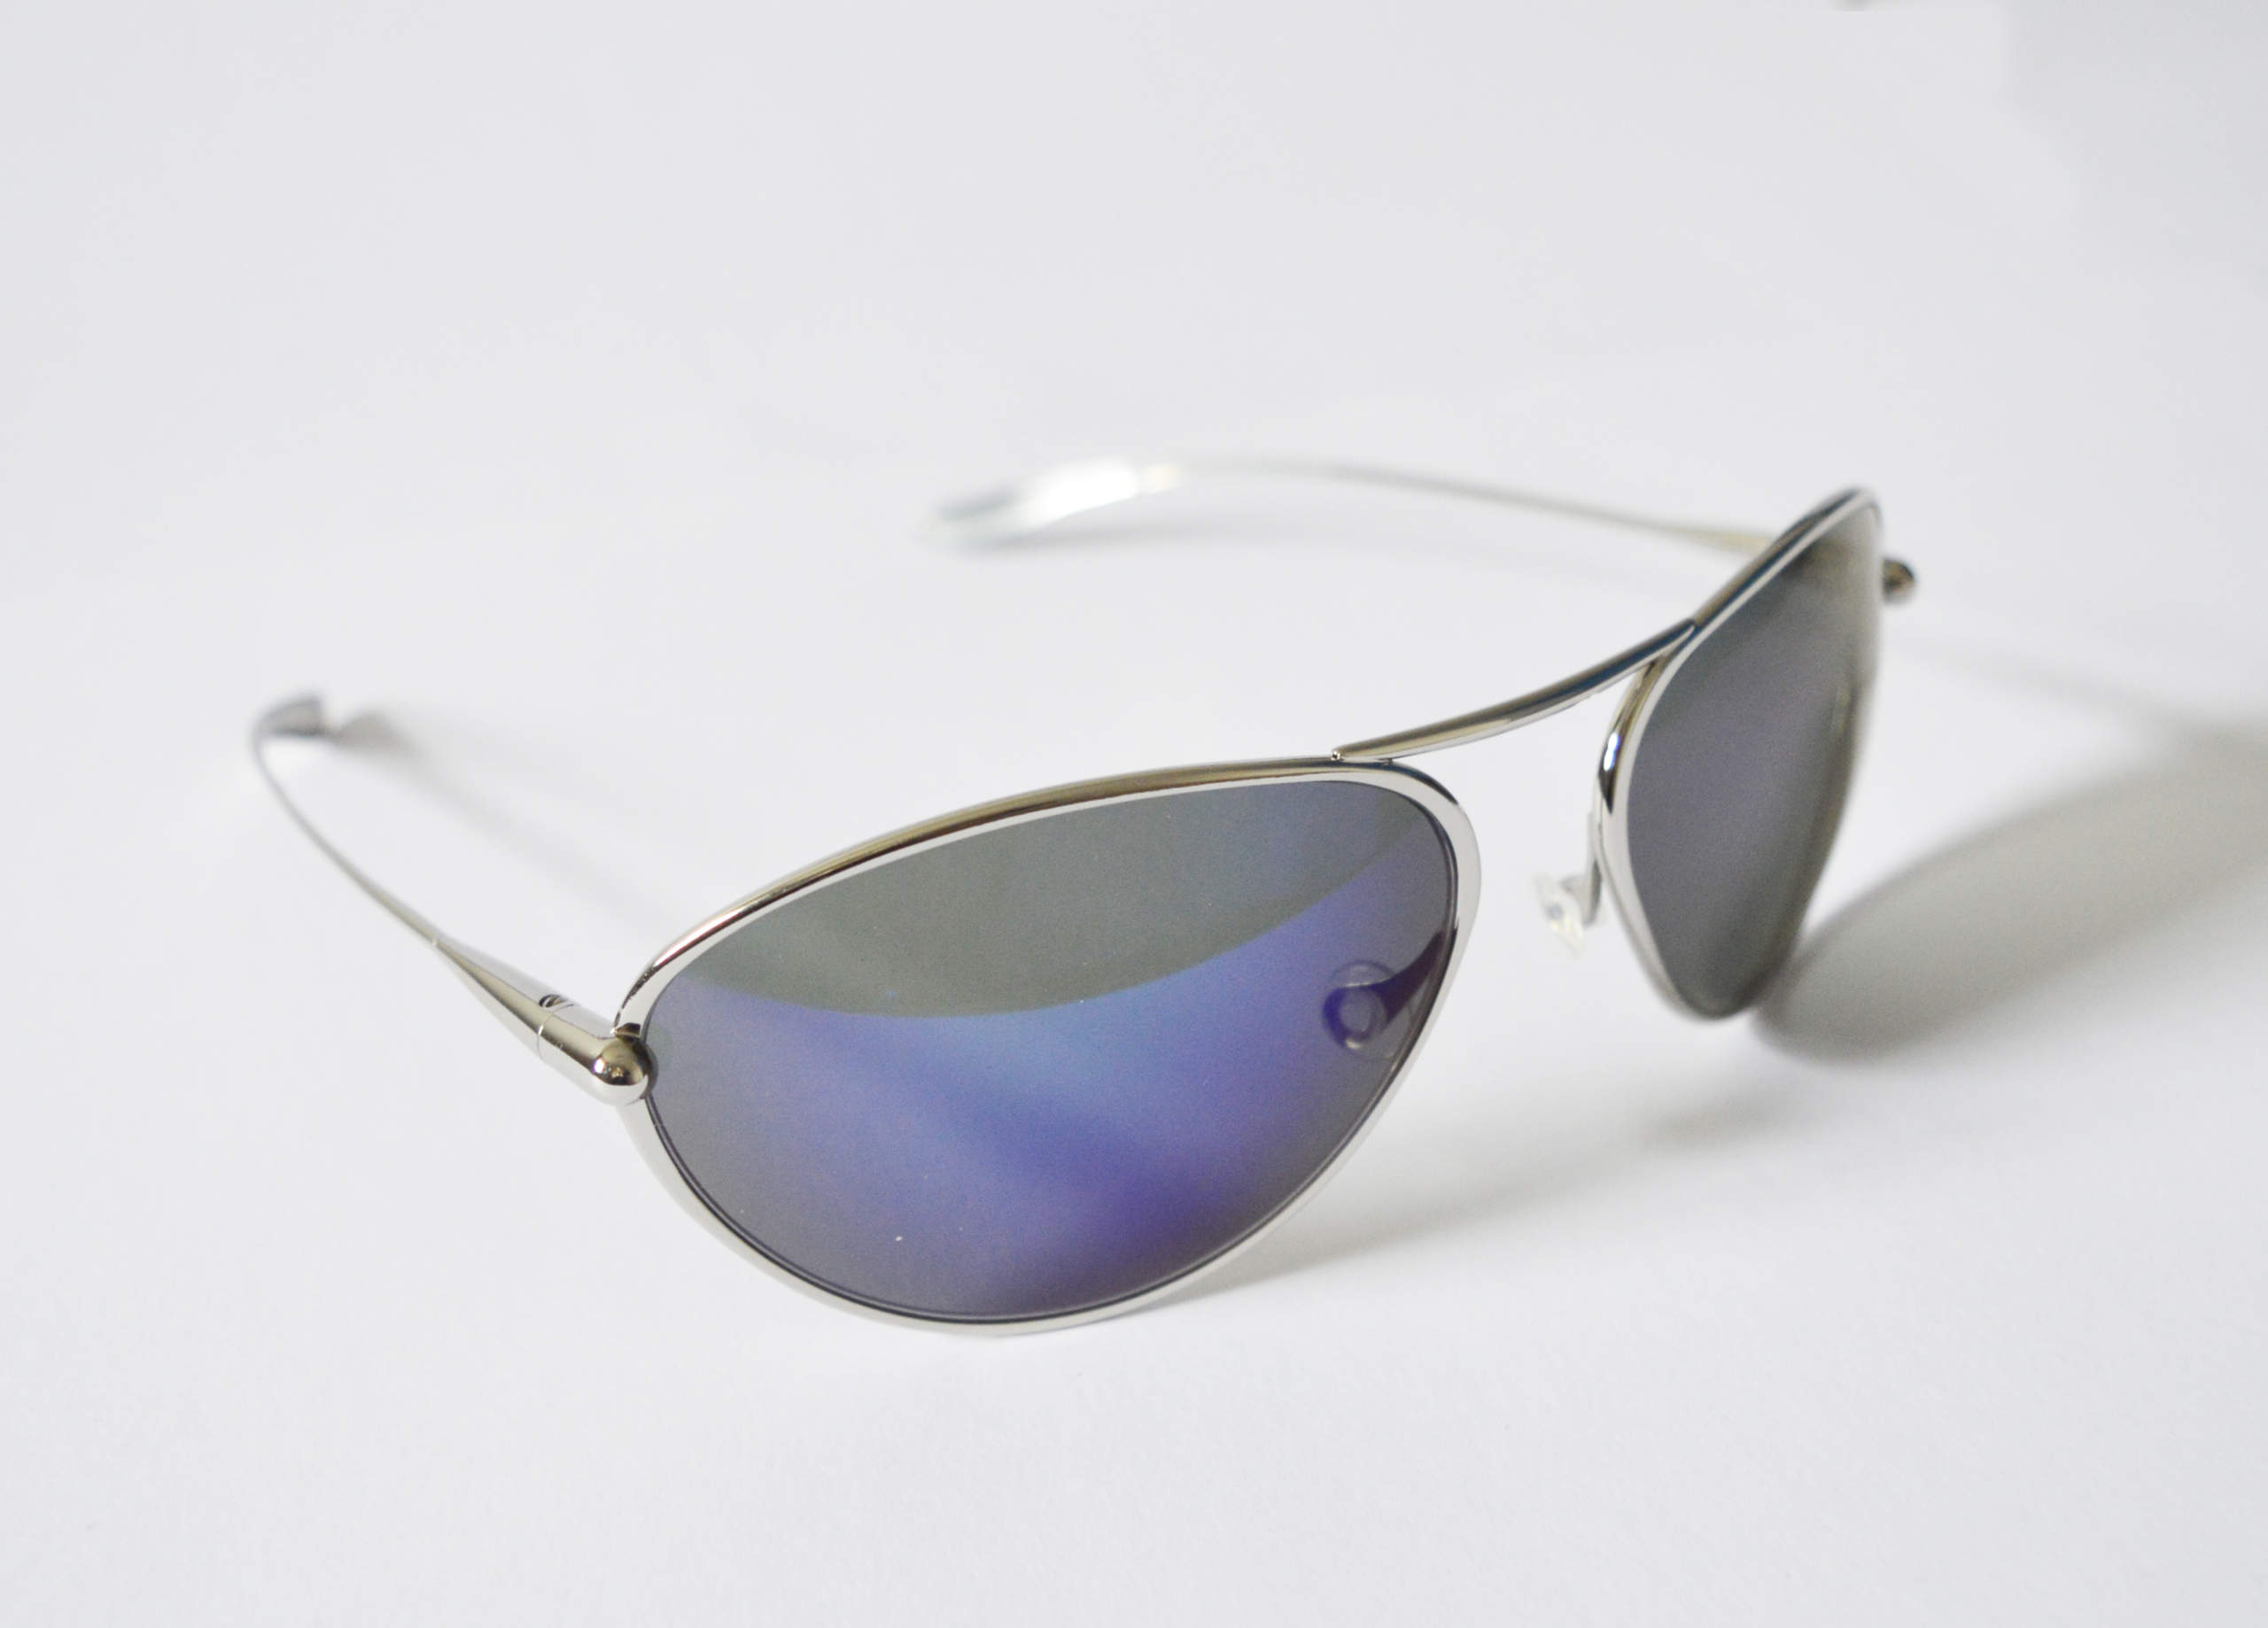 Tropo - Polished Titanium Frame Iridescent Blue Mirror Grey High-Contrast Sunglasses